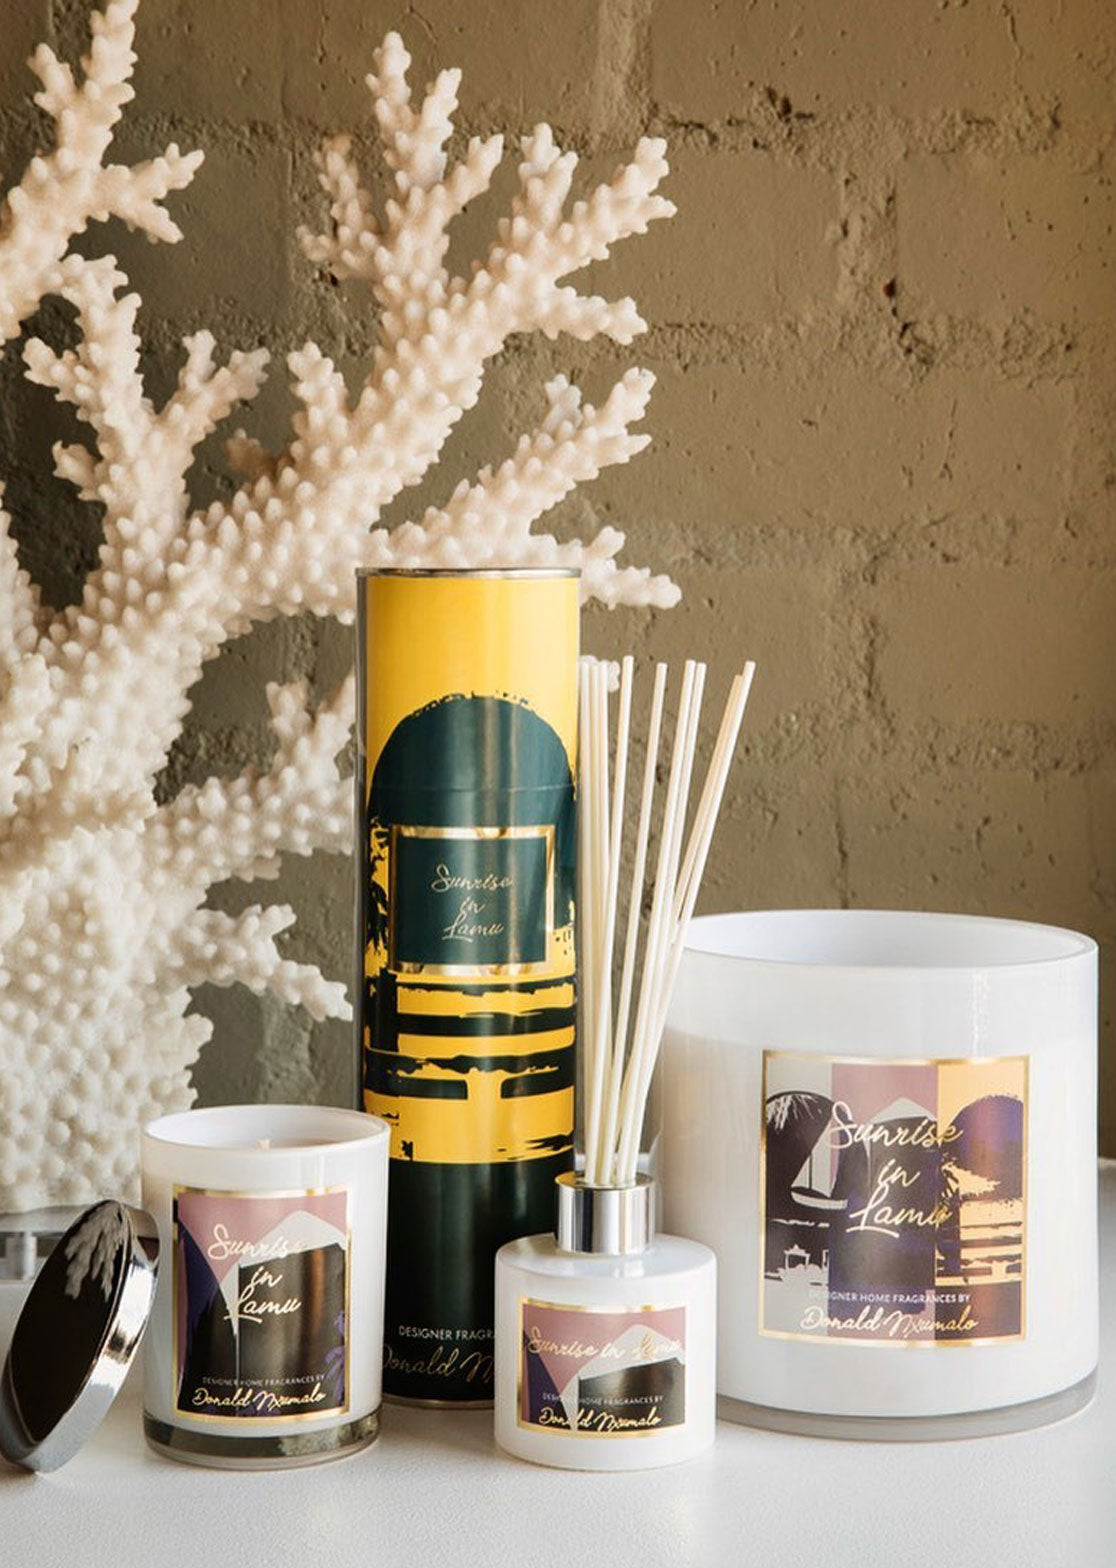 SUNRISE IN LAMU-Home Fragrance Collection-Donald Nxumalo.